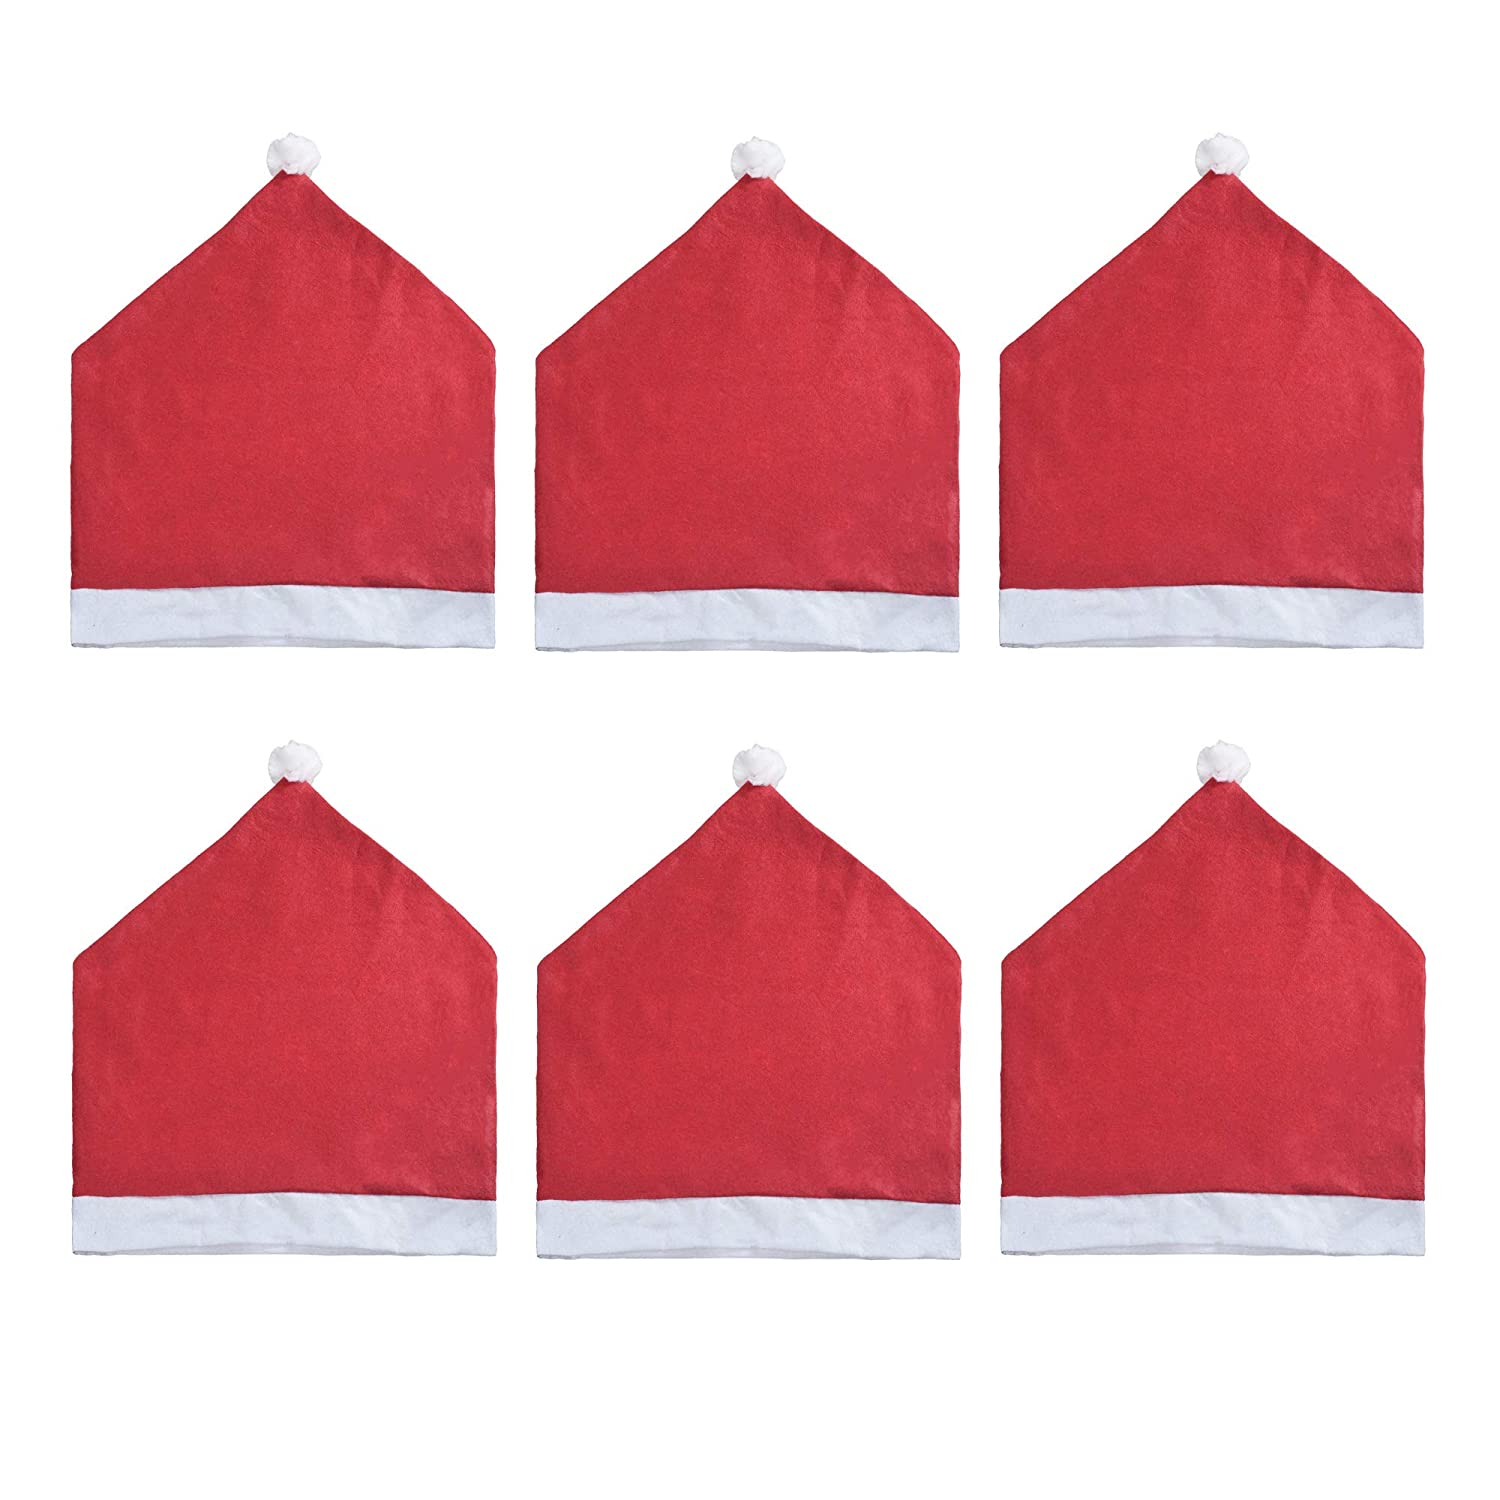 19 x 23 Inches CM Cosmos Pack of 6 Santa Claus Red Hat Chair Covers Chair Back Slipcovers for Dining Kitchen Chair Holiday Decoration